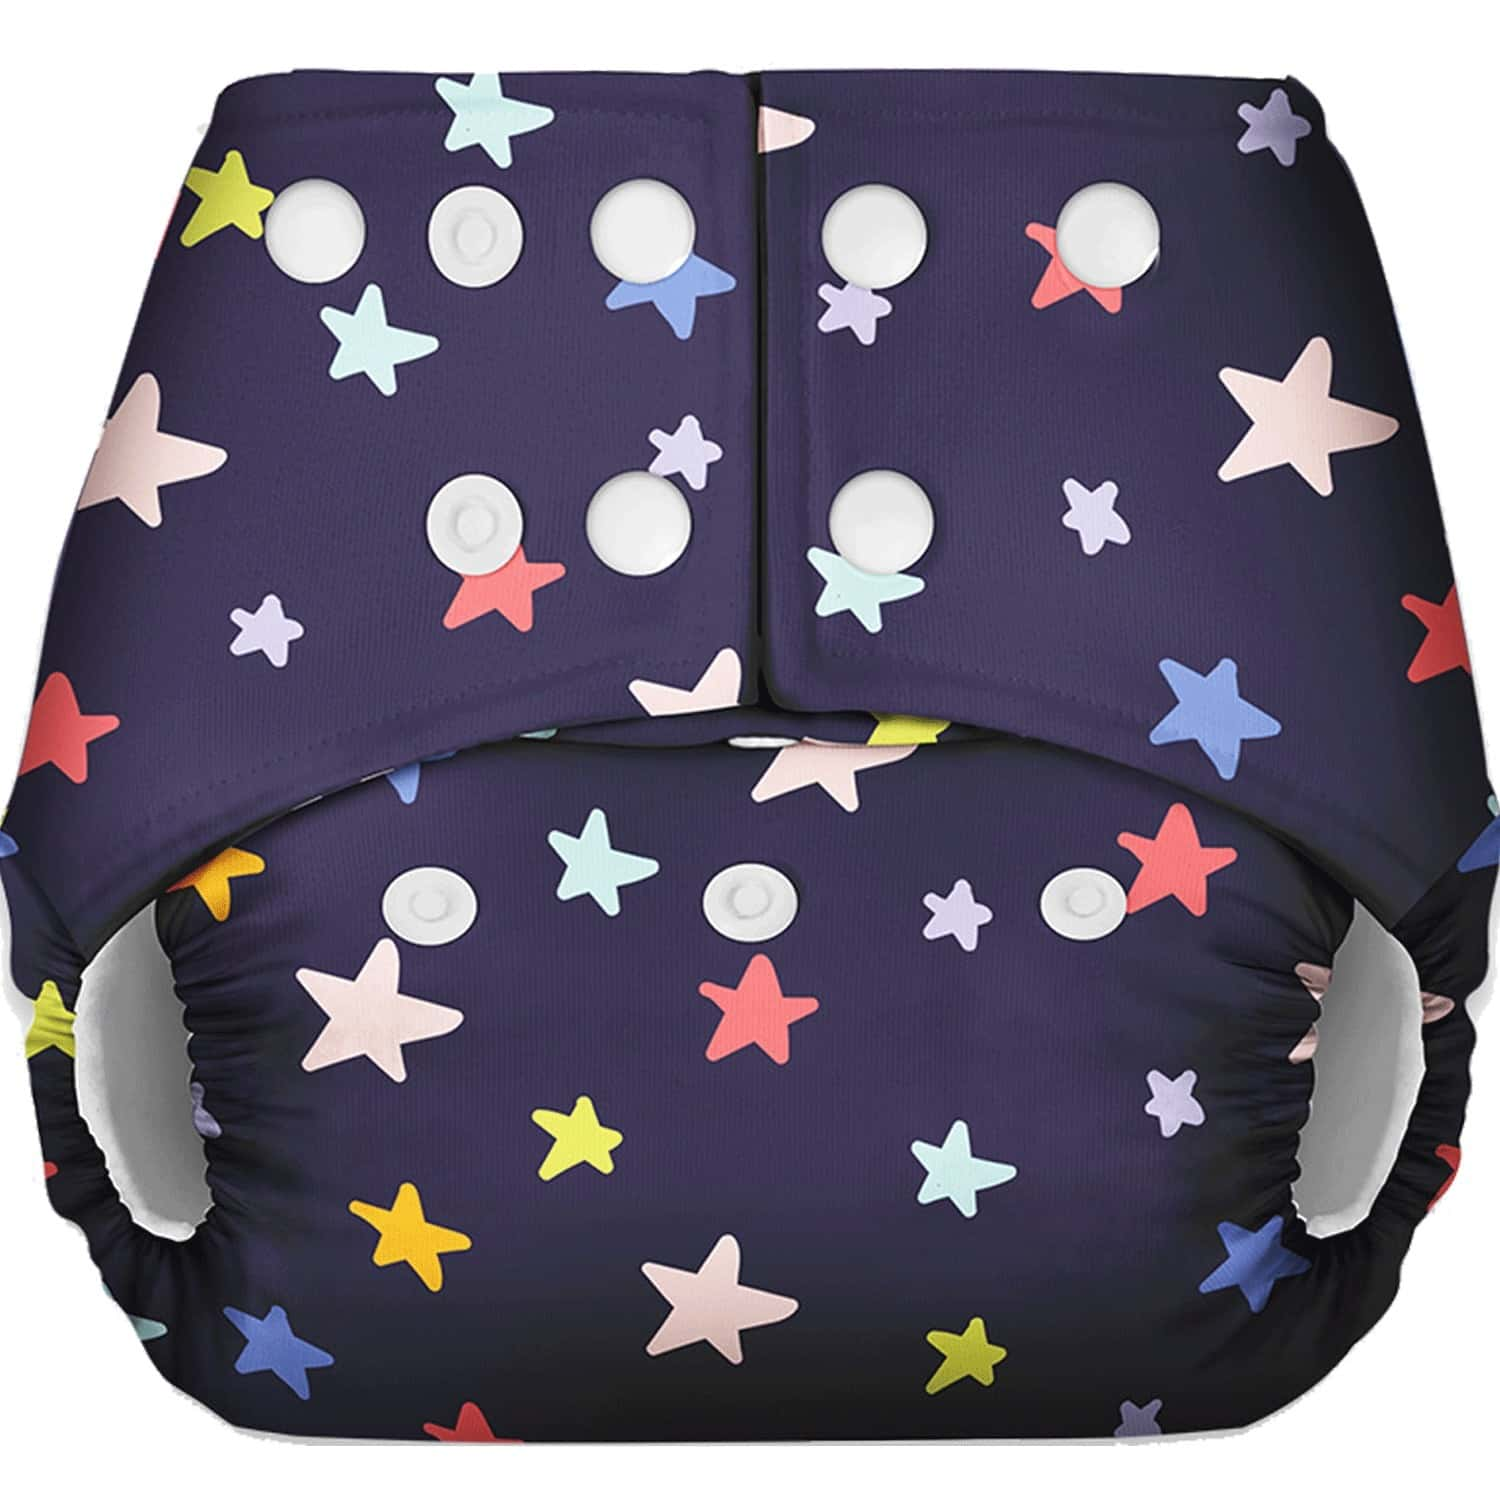 Basic - Freesize Reusable Pocket Cloth Diaper For Babies-with Dry Feel Insert - Black Star